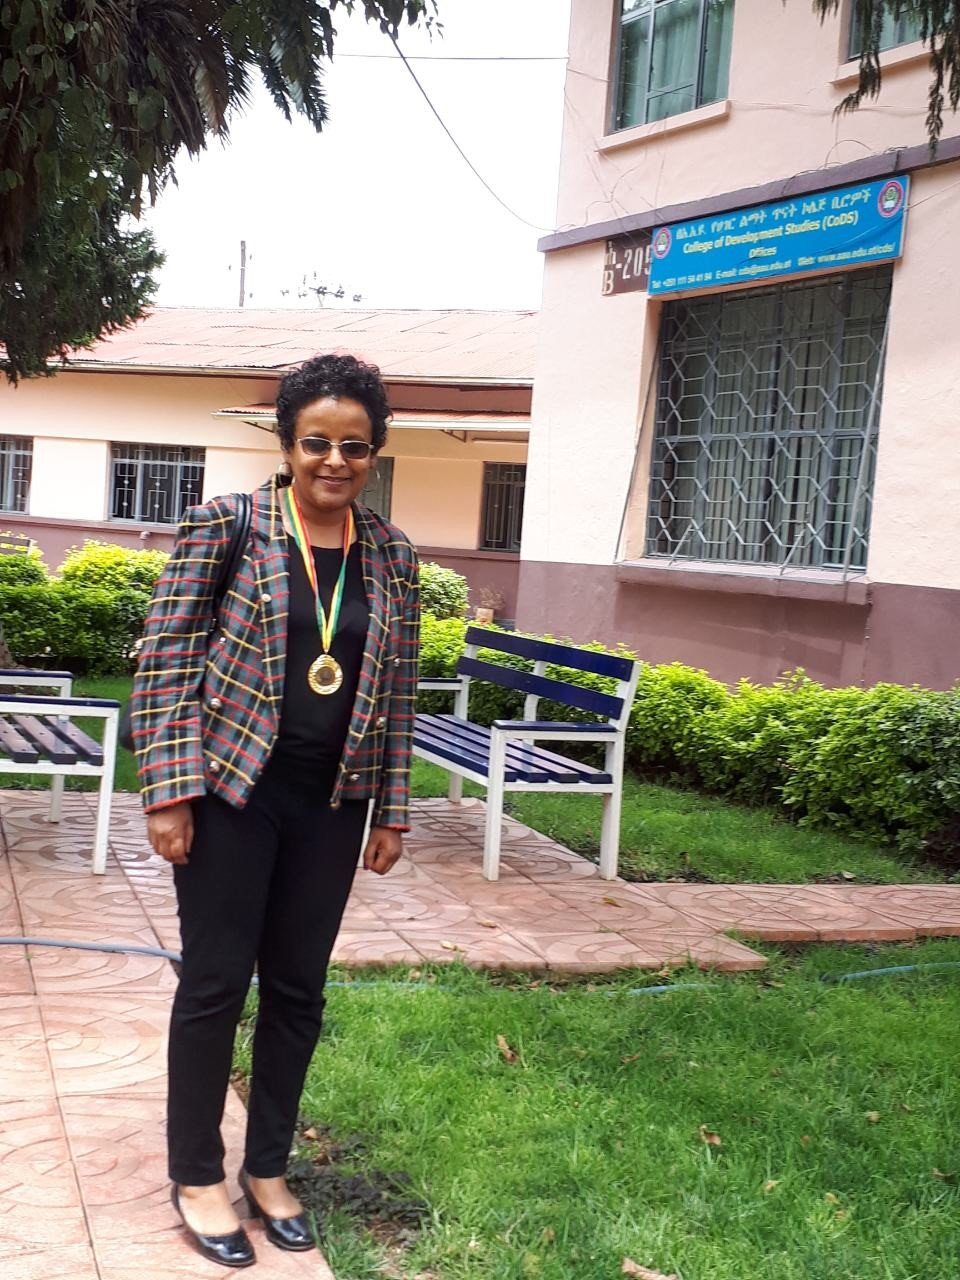 Award winner at Addis Ababa University | Global health anthropology